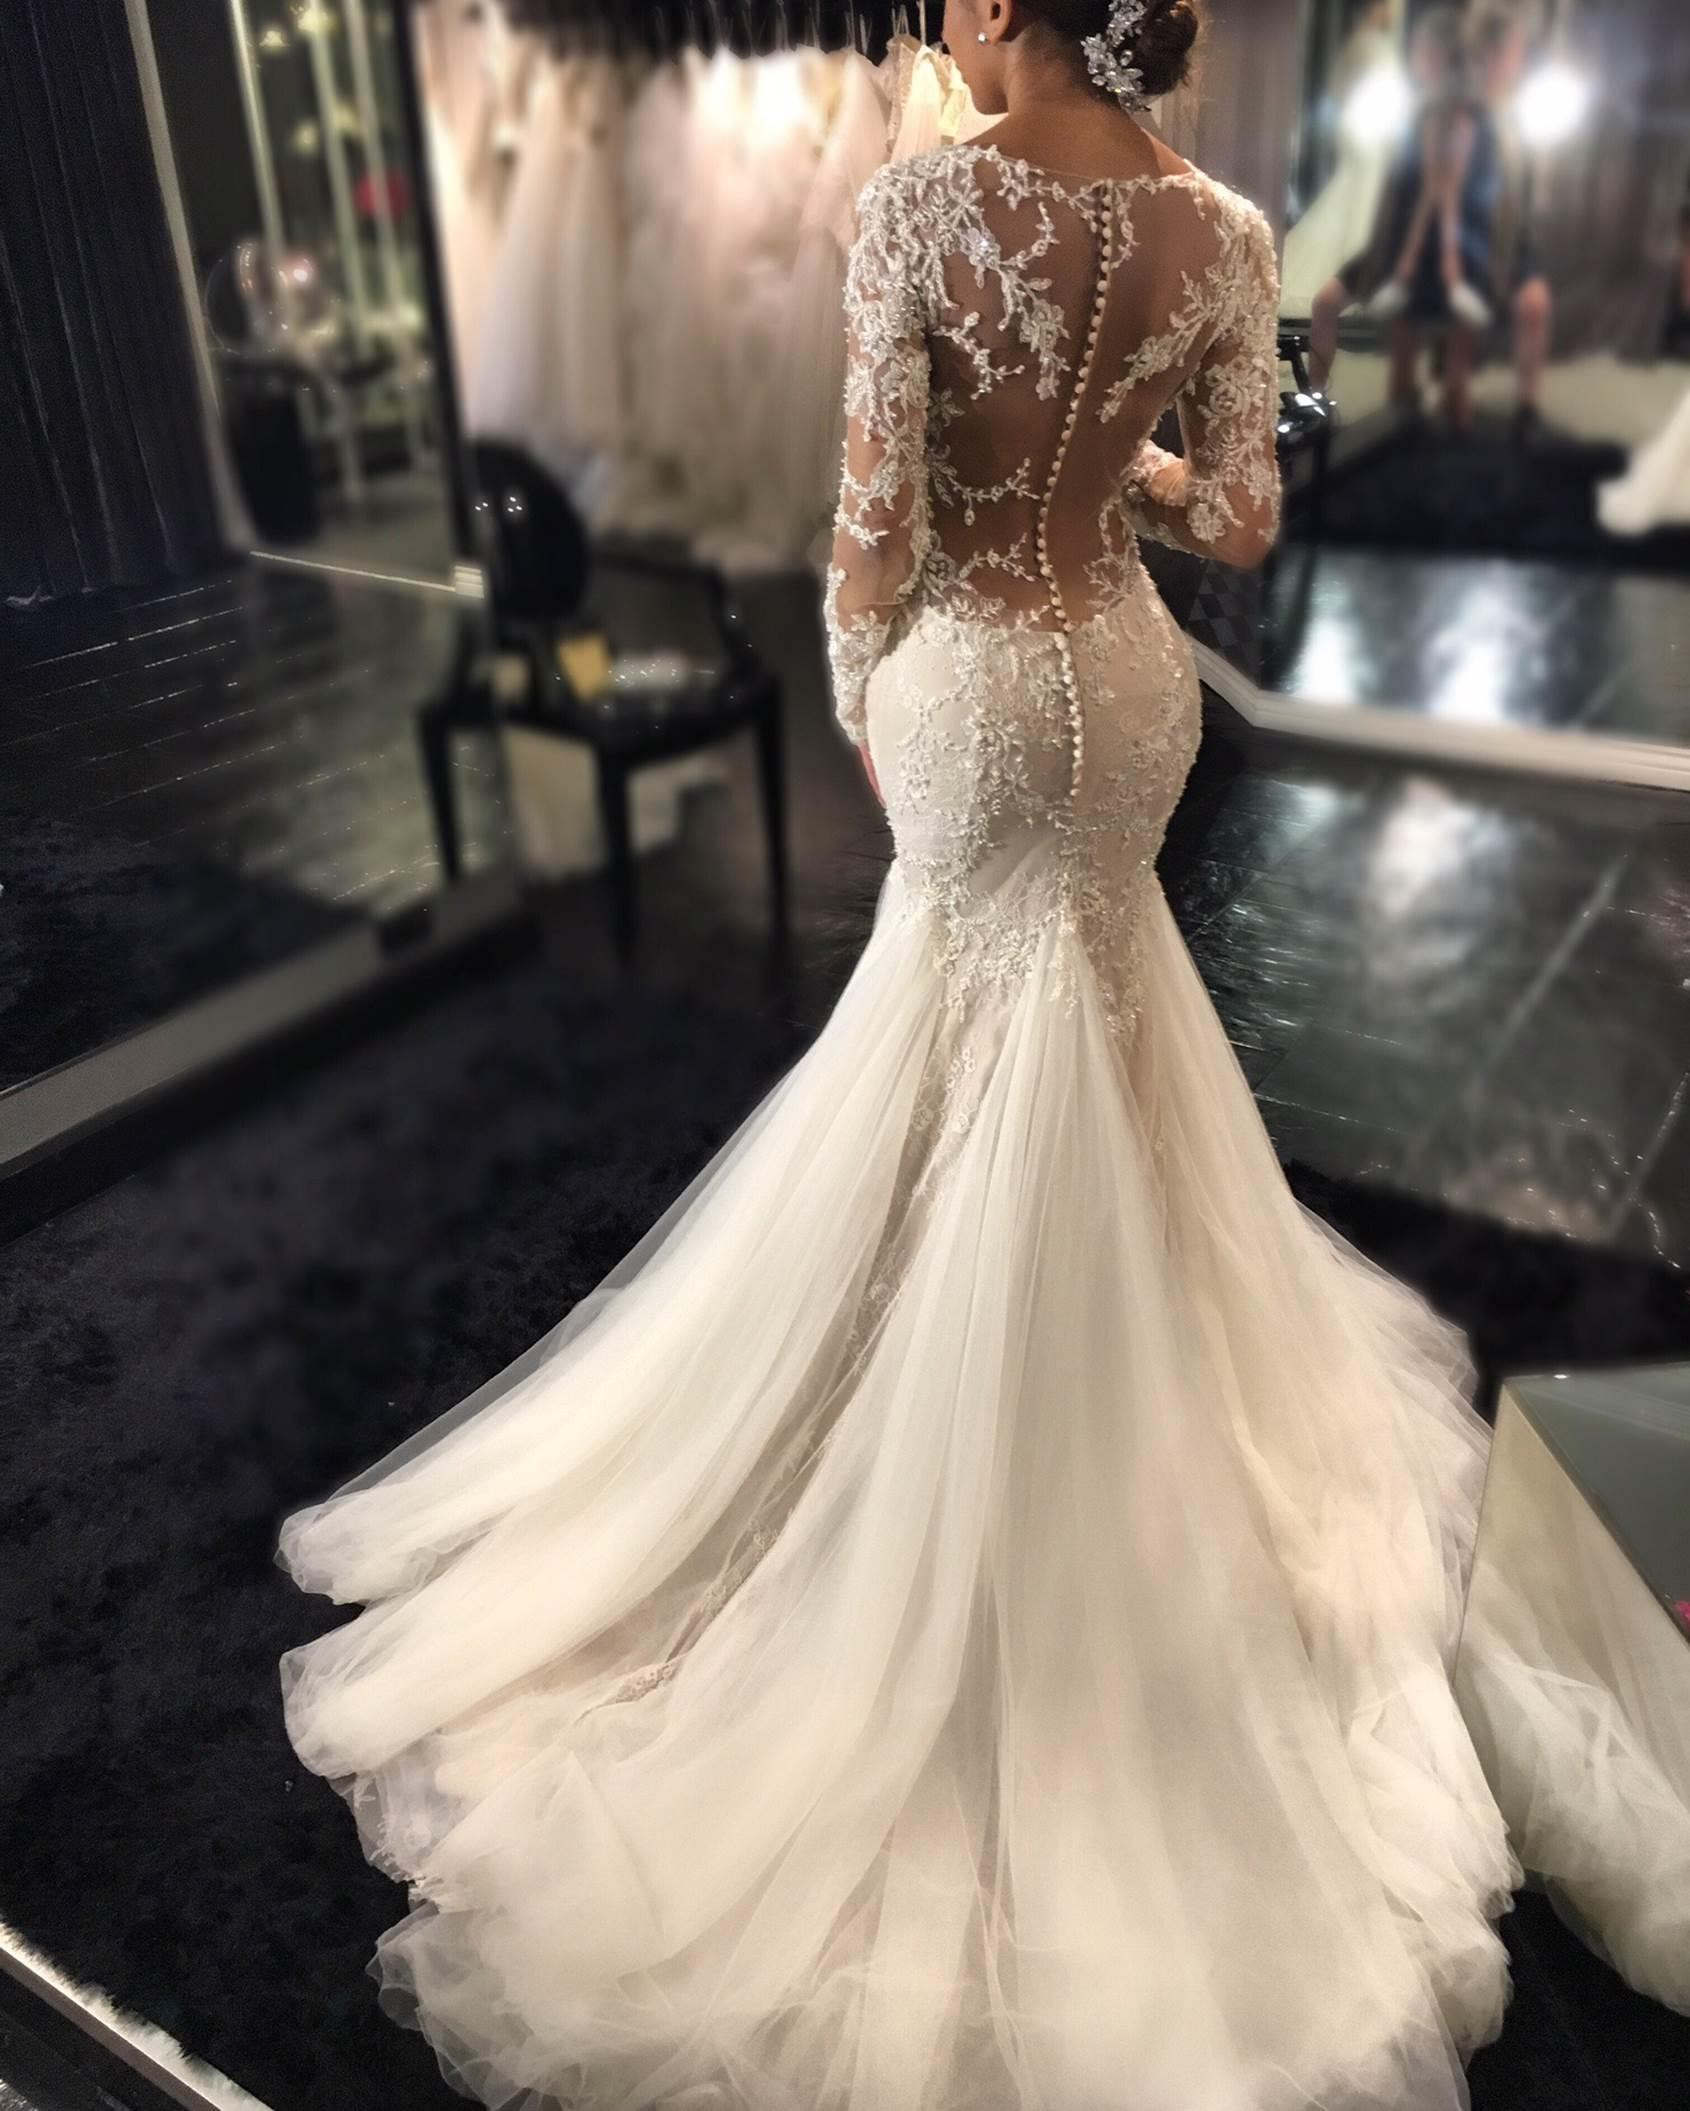 Bridal Gown Clearance Sale